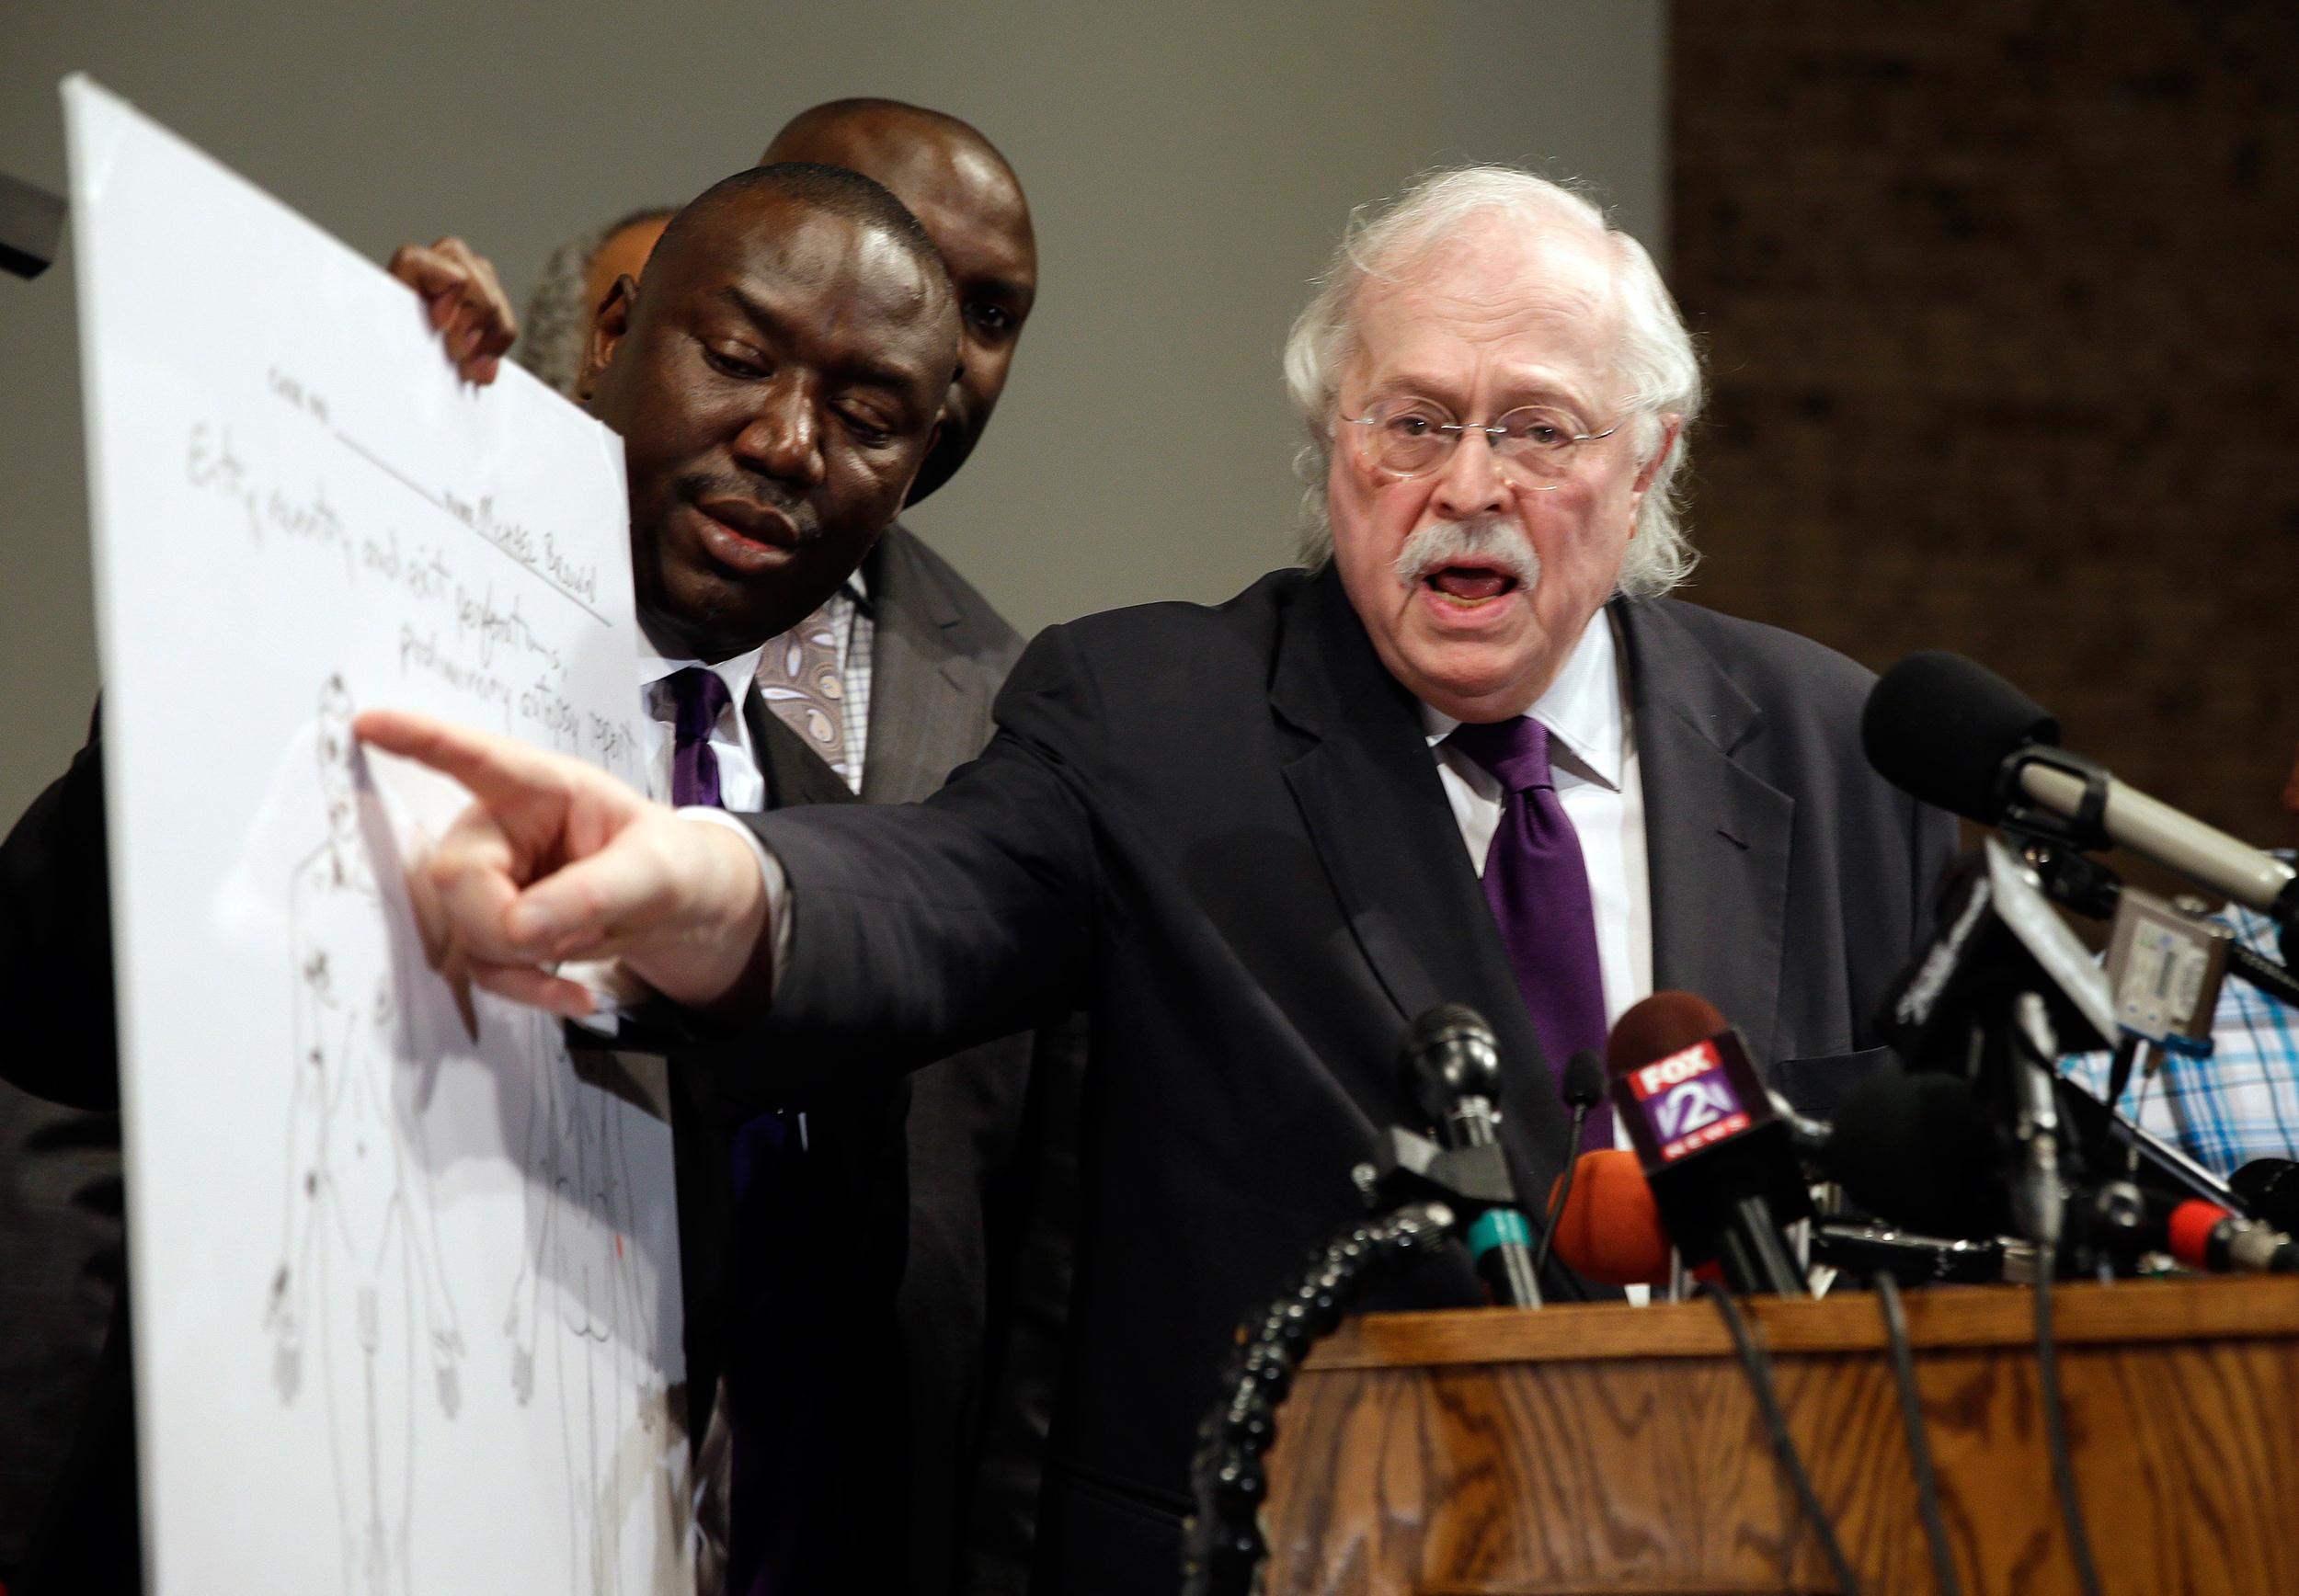 Image: Michael Baden performed an autopsy on Michael Brown